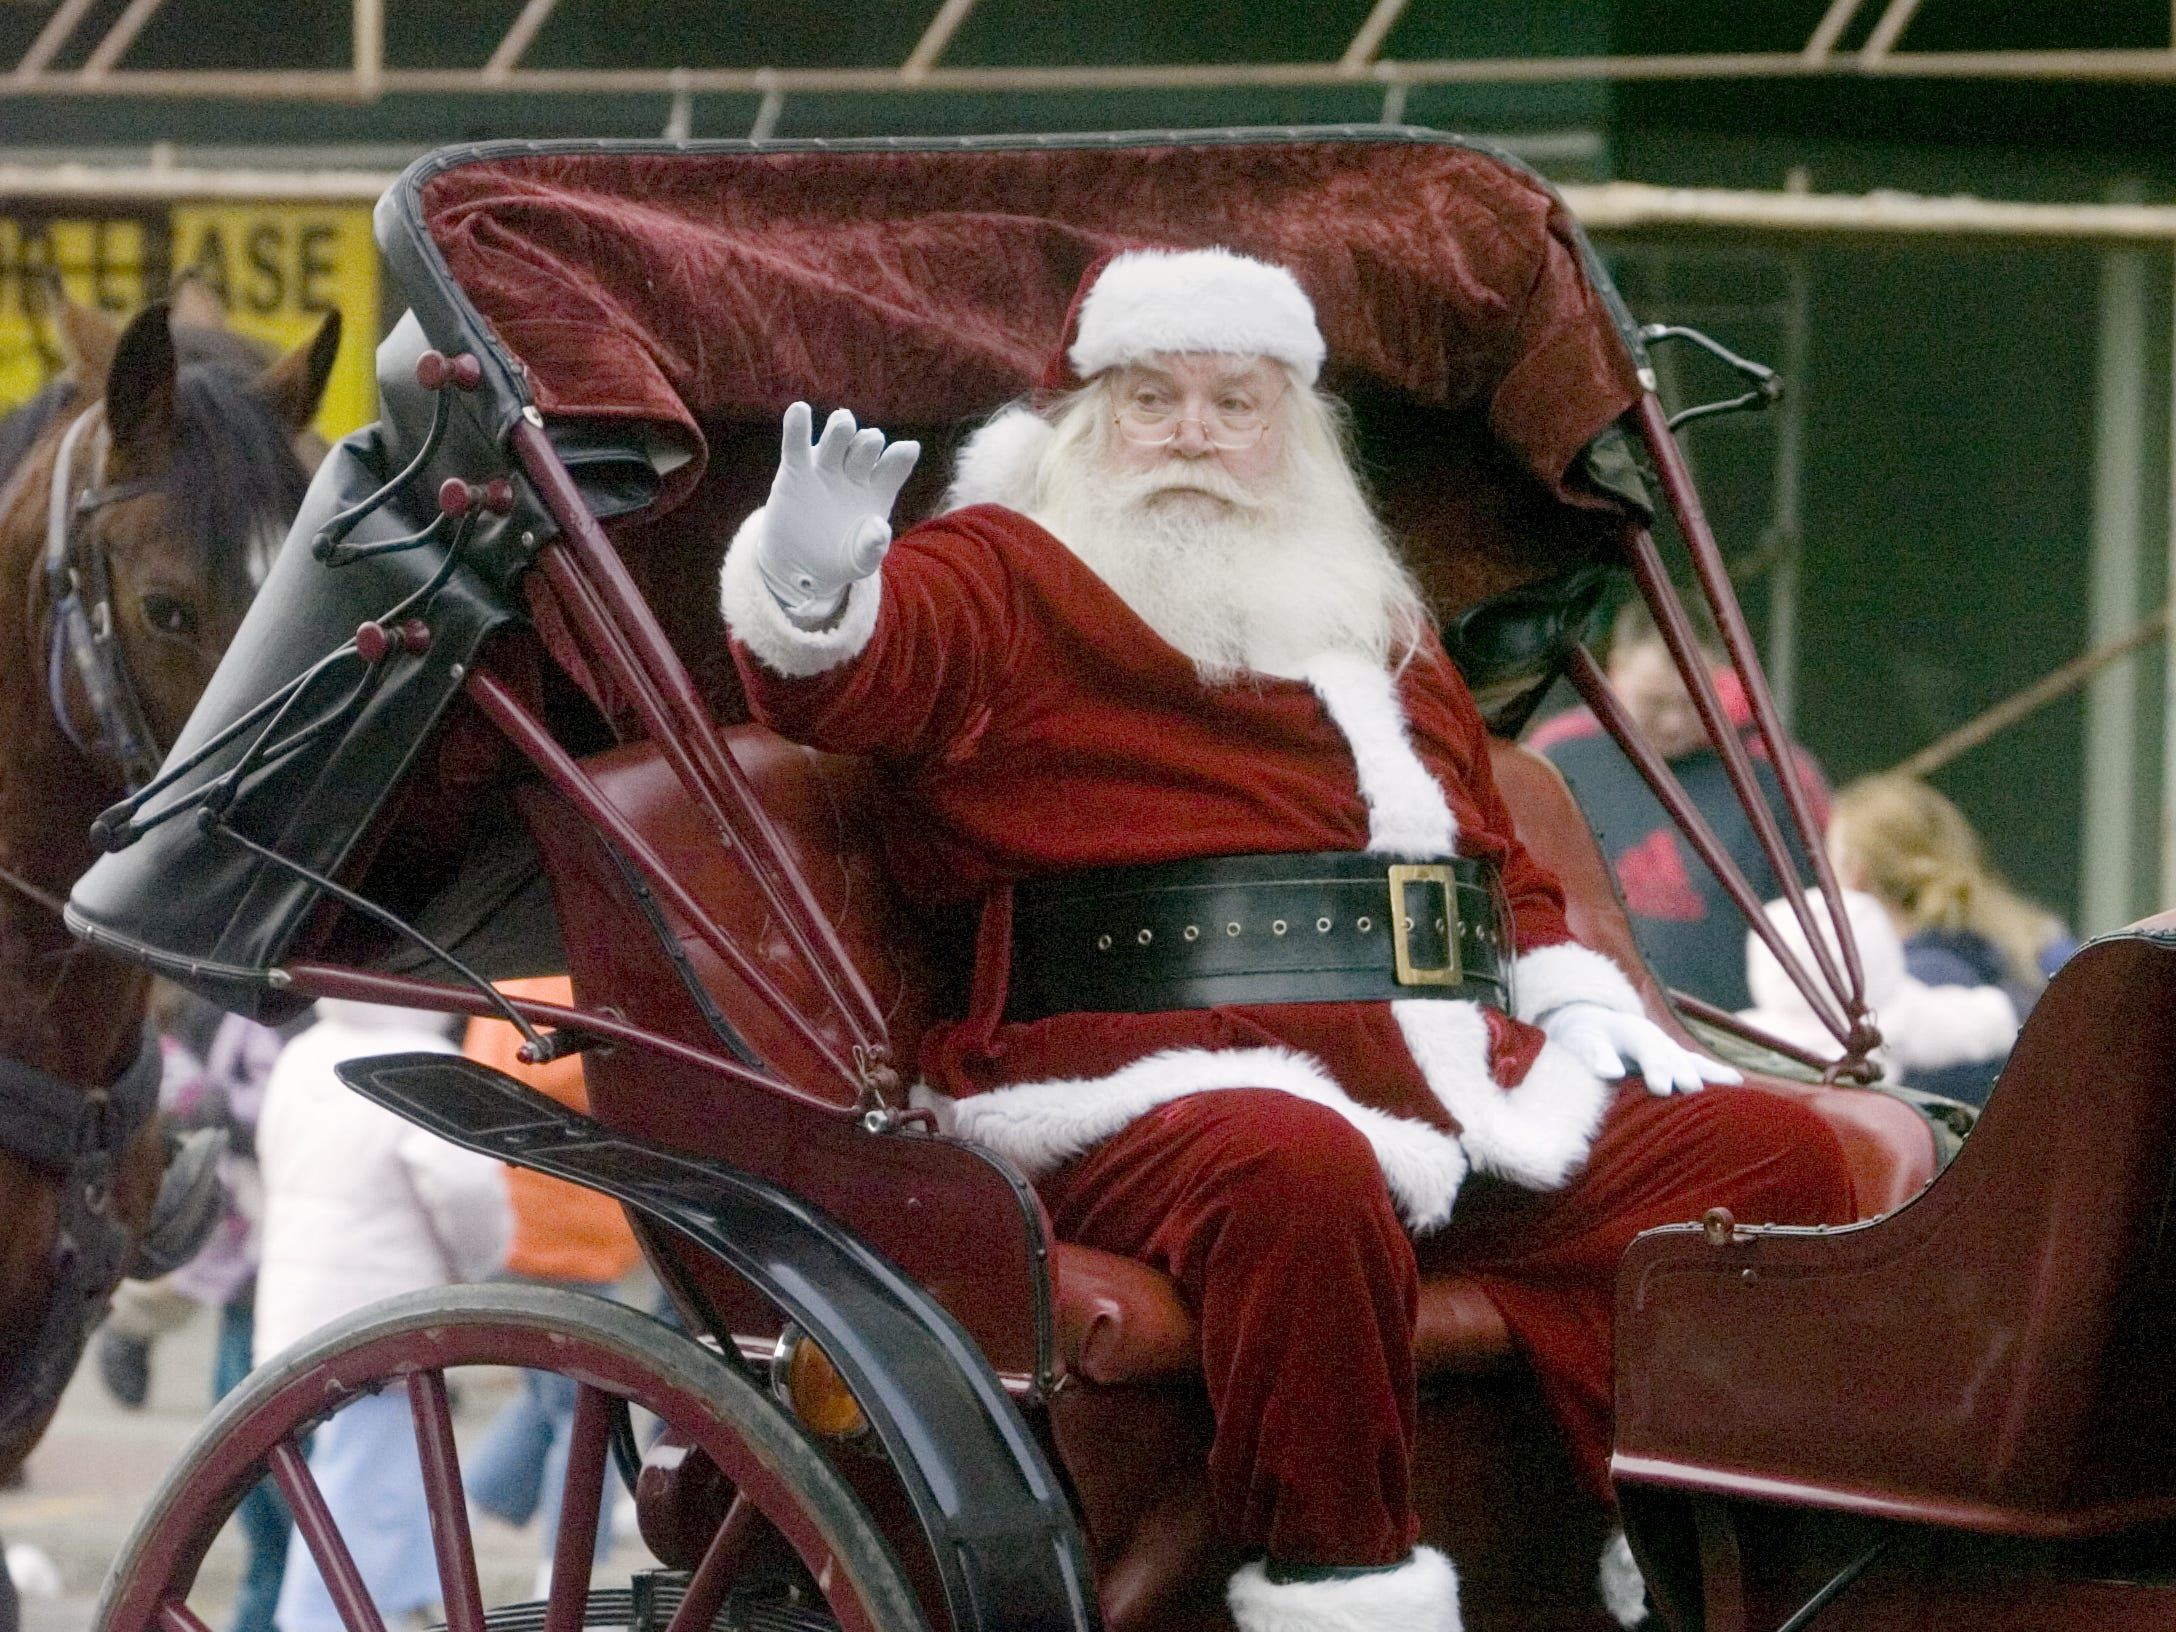 Santa Claus waves to the children Sautrday afternoon in Binghamton during the annual Boscov's Holiday Parade in 2012.